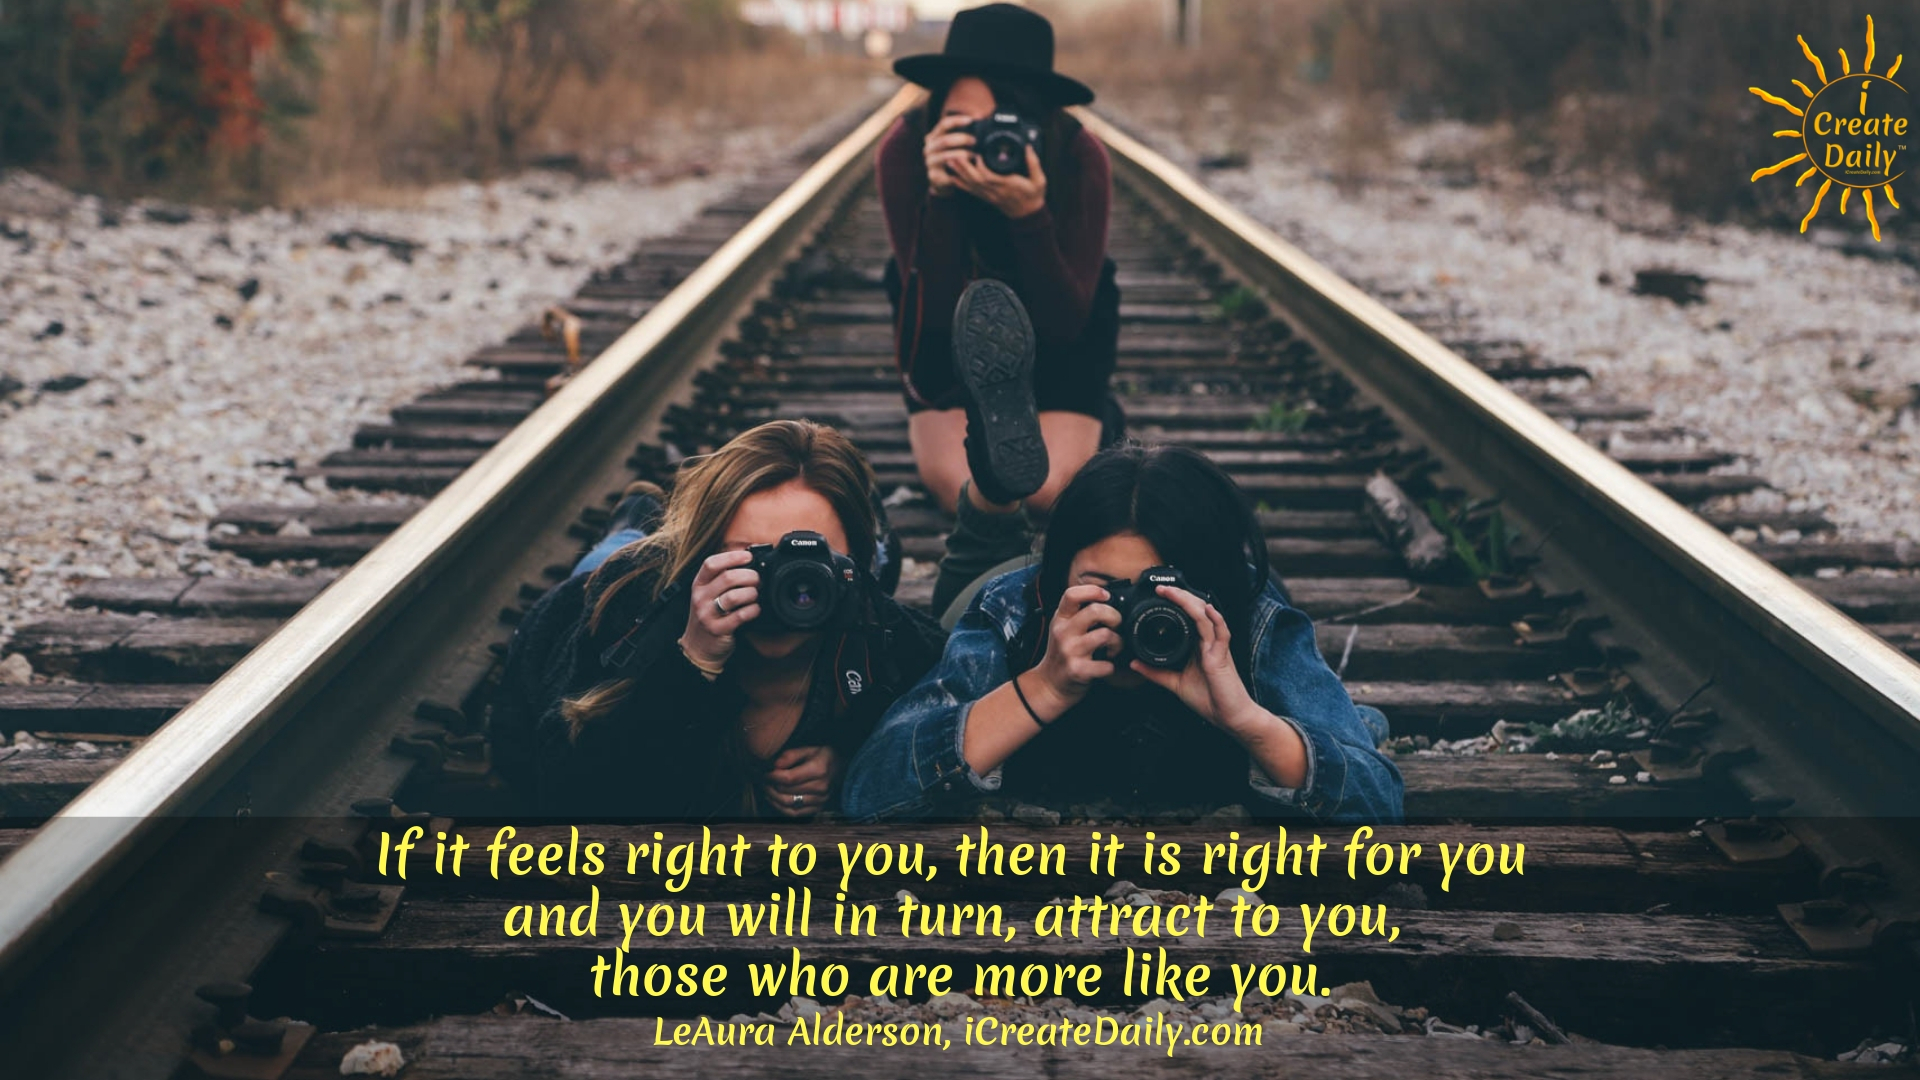 If it feels right to you, then it is right for you and you will in turn, attract to you, those who are more like you. ~LeAura Alderson, author, entrepreneur, cofounder-iCreateDaily #Quotes #Inspiration #Ideas #Art #Writing #Photography #Design #Projects #Drawings #Exercises #Business #Aesthetic #Lettering #Thinking #Journal #Gifts #Decor #Illustration #Home #icreatedaily #Poster #Images #Marketing #Portfolio #poetry